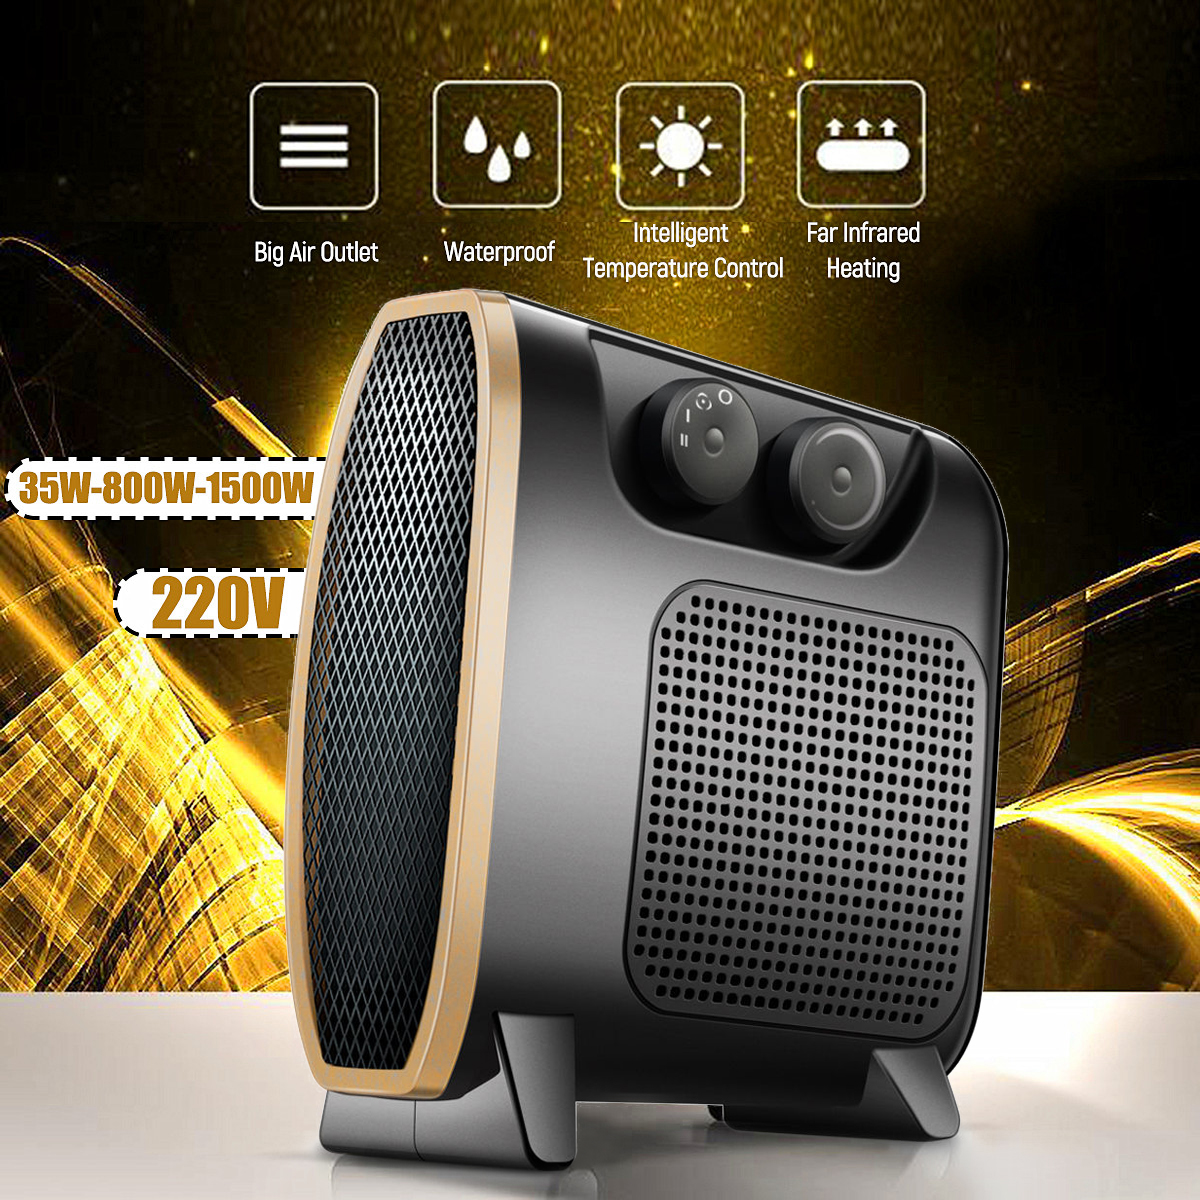 220V 35-800-1500W Desktop Household Handy Heater Mini Fan Heater Electric Air Heater Stove Radiator Warmer Machine For Winter cute mini fan heater desktop household electric heater fast handy heater warm machine for winter small desktop heater